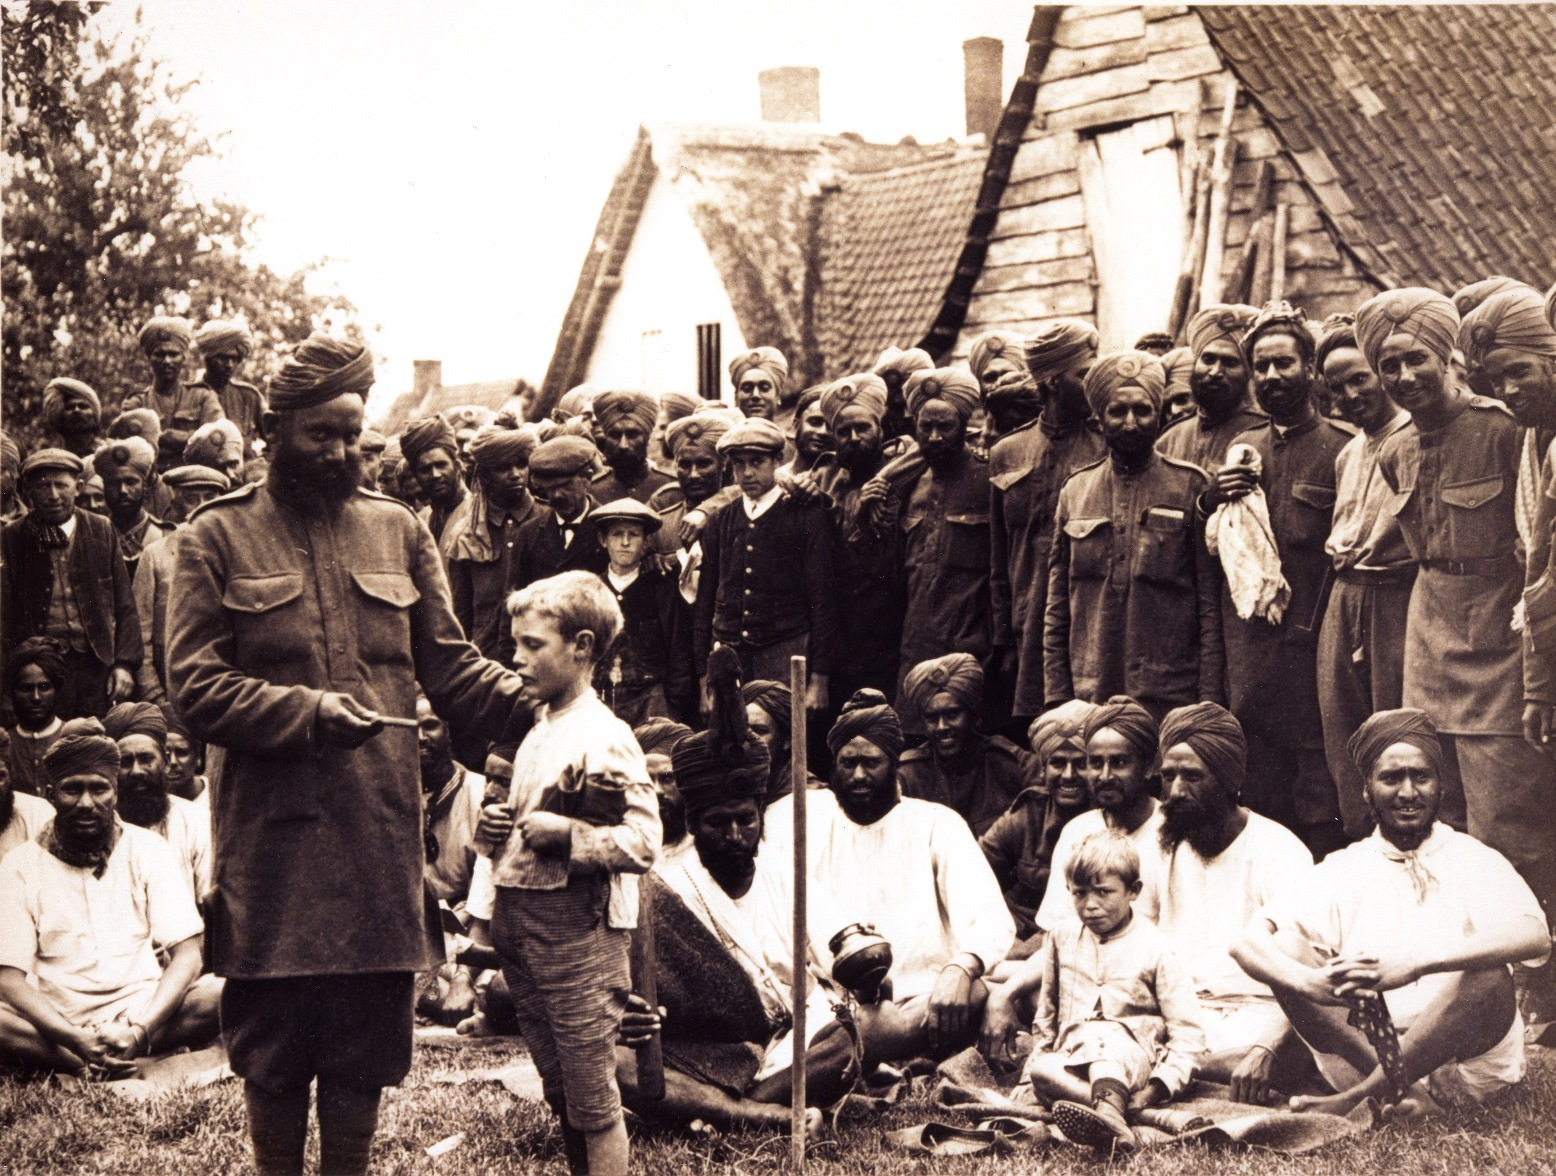 On Flanders Fields: Men of the 15th Sikh Regiment spend time with the locals in a Flanders village after weeks in the trenches of the Western Front, c. 1915. (Source: UKPHA Archive)